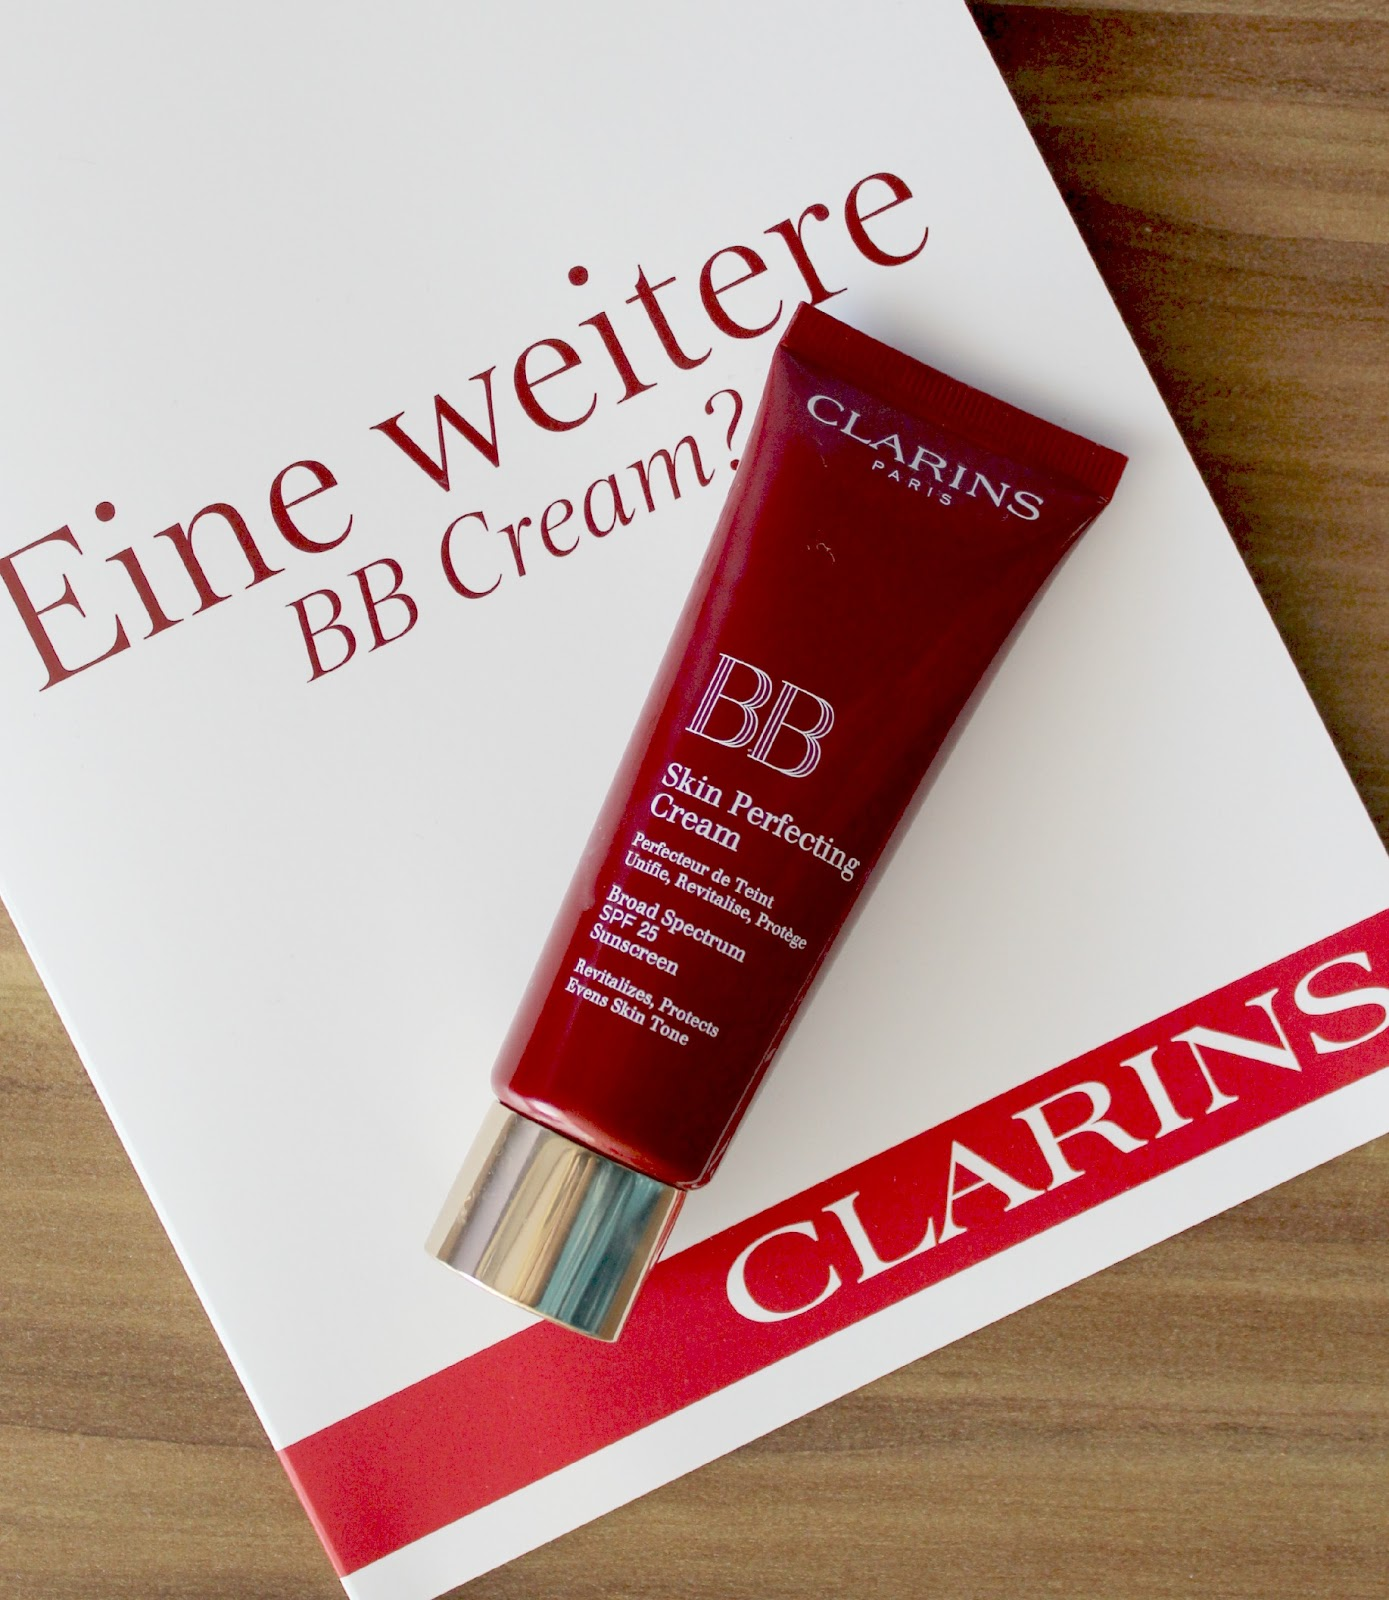 clarins skin perfecting bb cream kirschbl tenblog. Black Bedroom Furniture Sets. Home Design Ideas